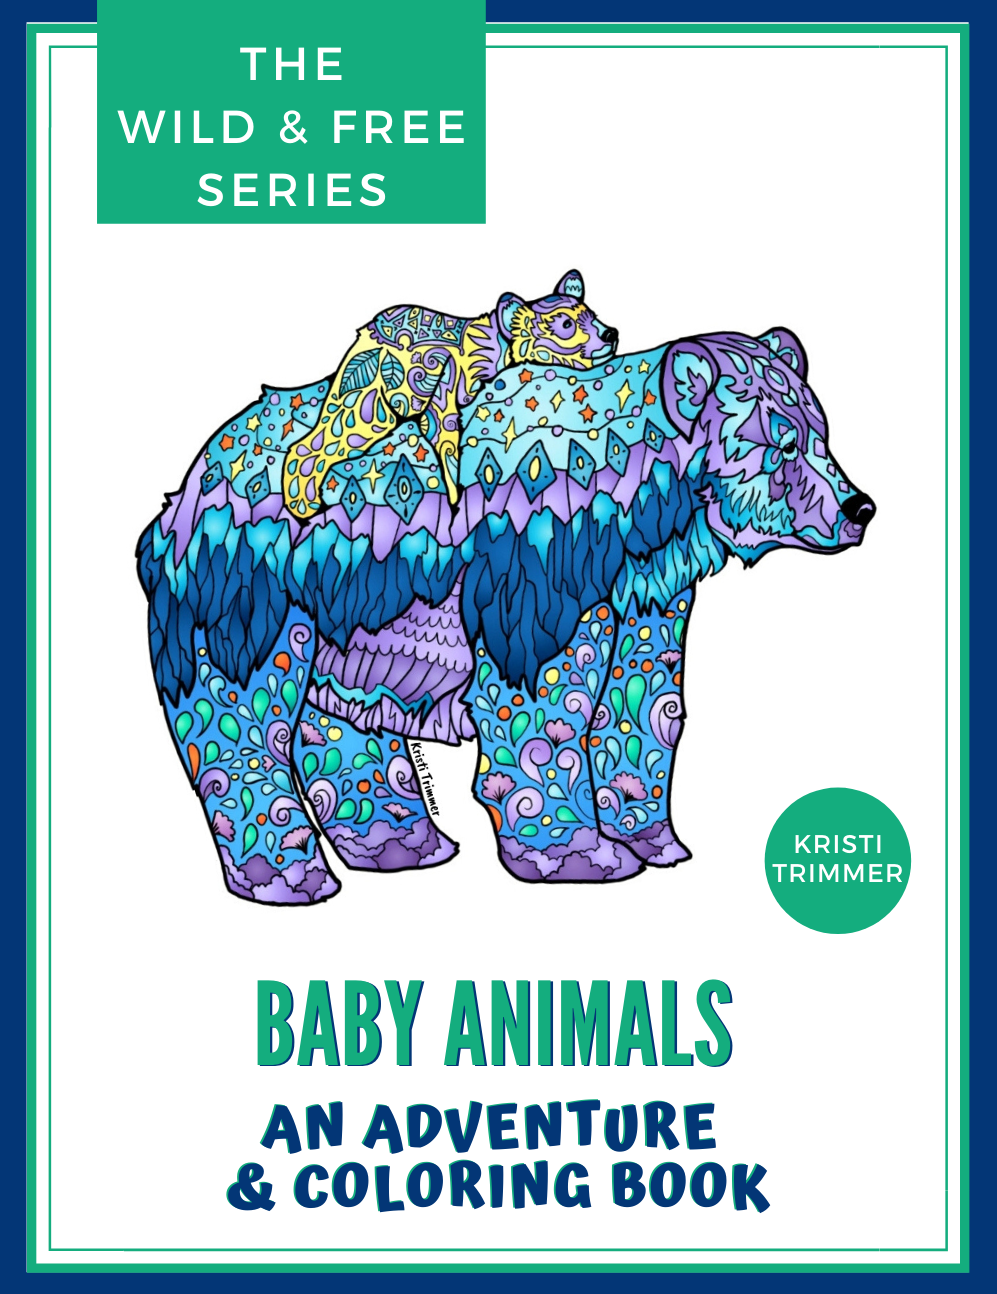 Book - Baby Animals: An Adventure & Coloring Book